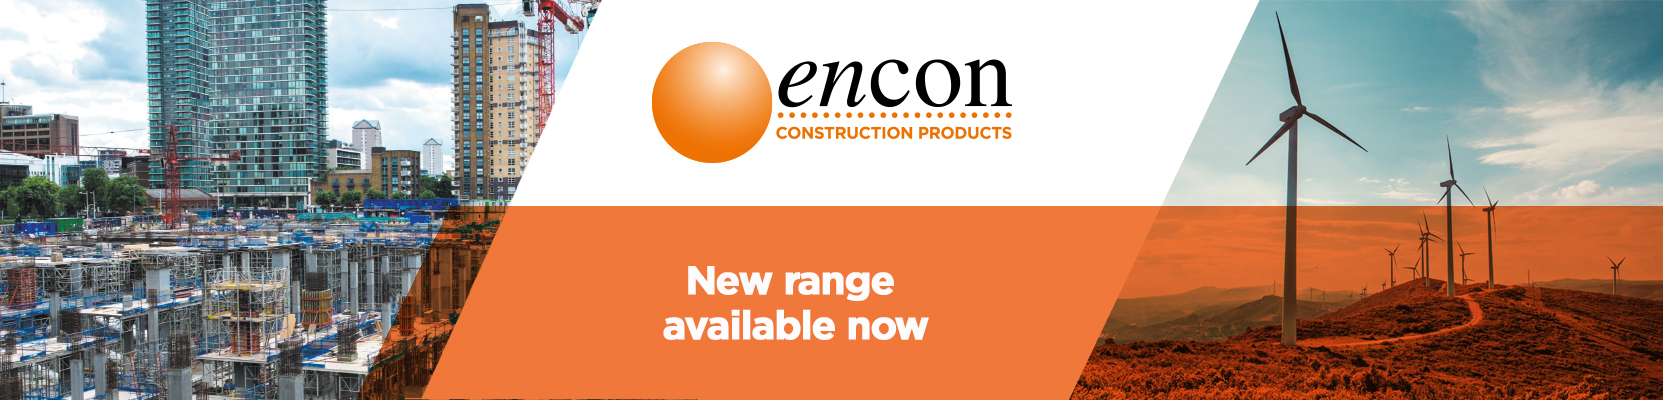 Encon Construction Products advertisement